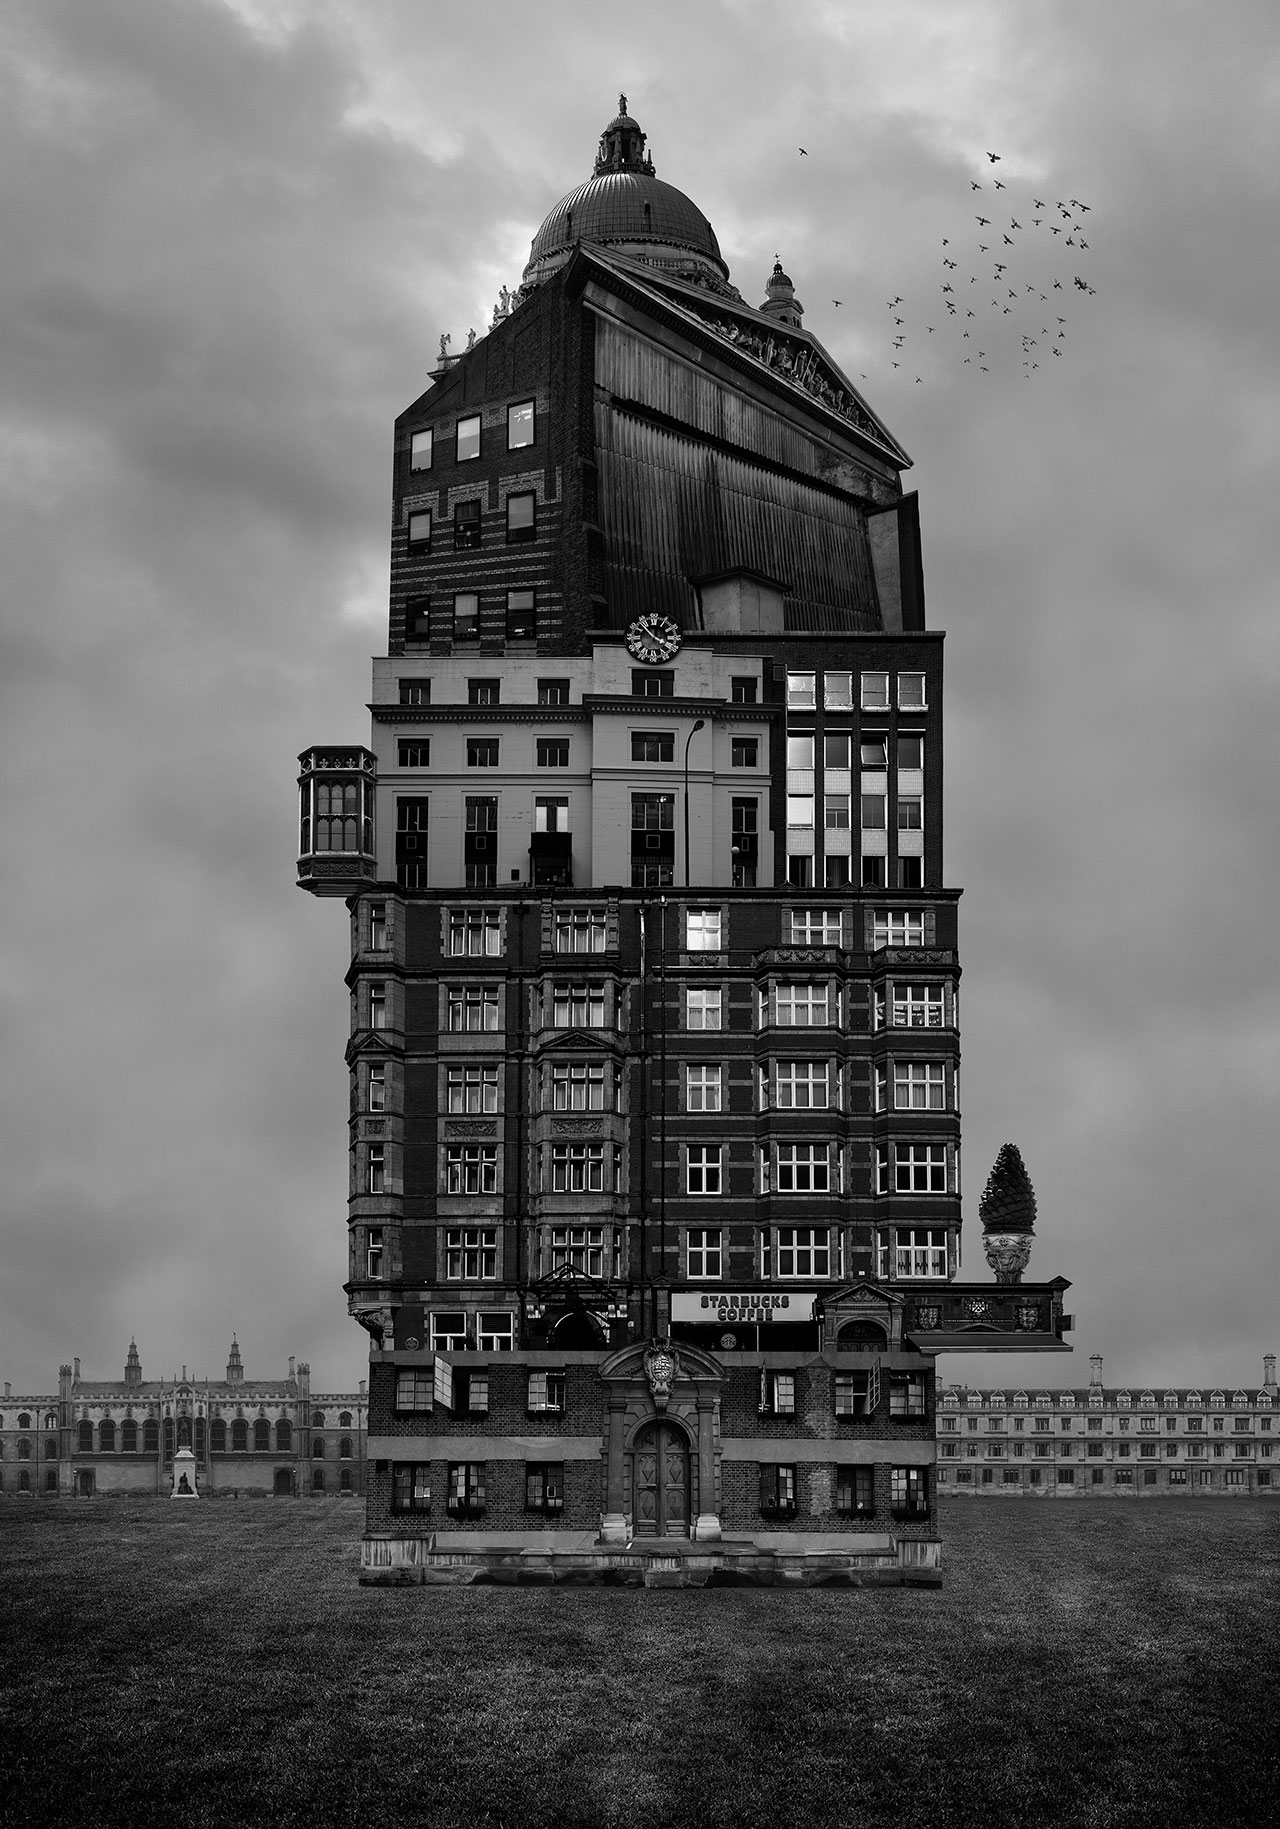 Beomsik Won, Archisculpture 008, 2012. Archival pigment print, 100x70 or 171x120cm.